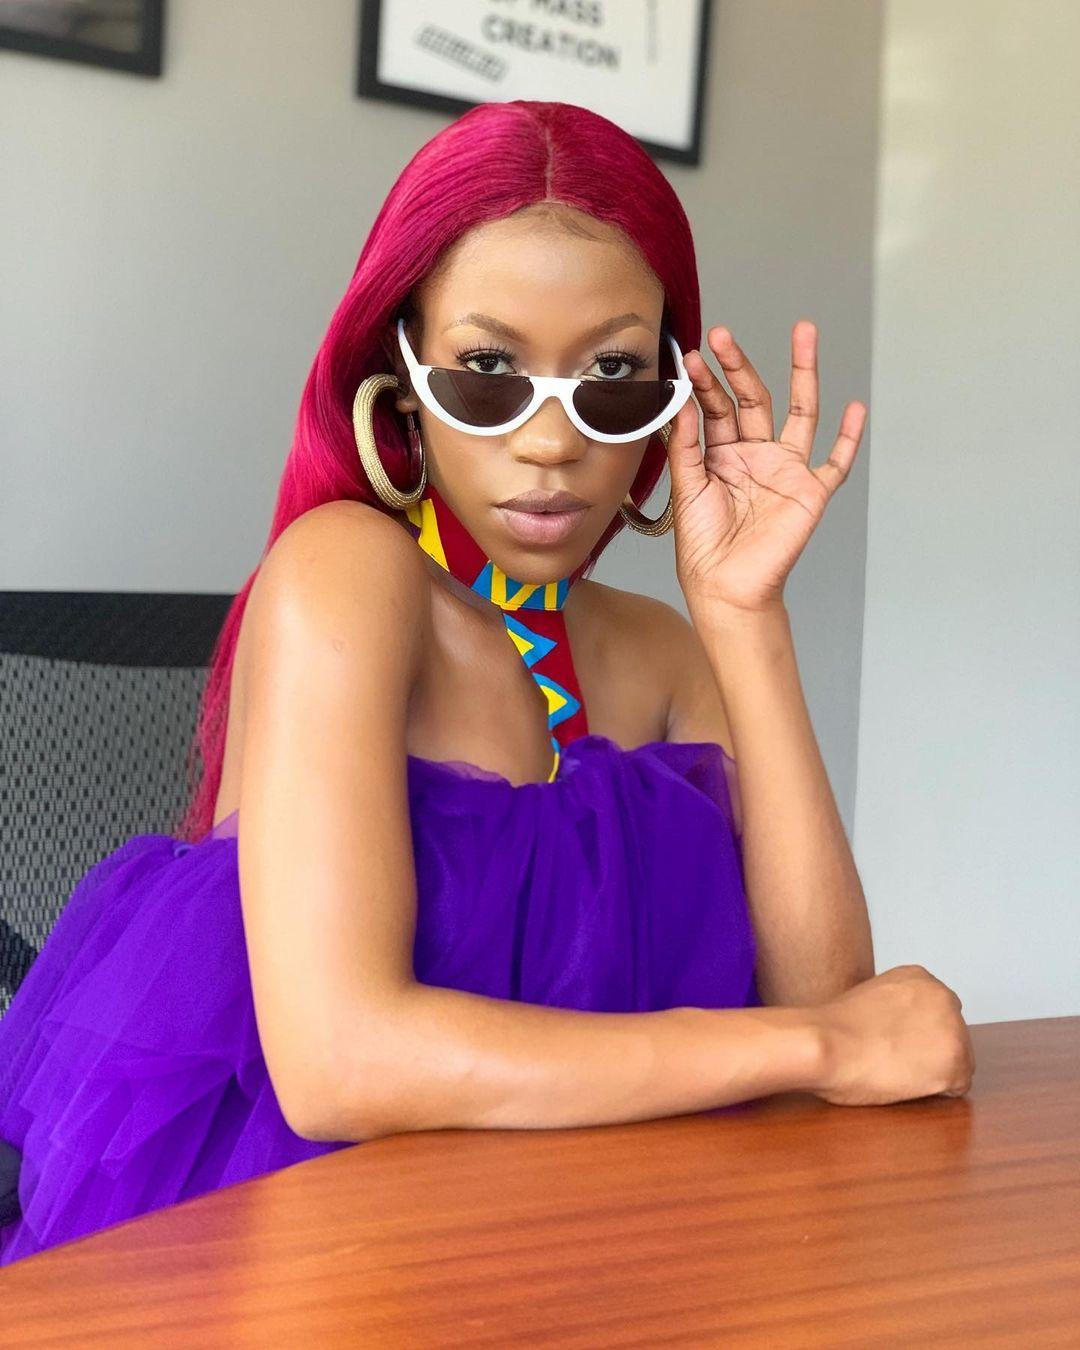 Moment Ugandan singer, Vinka, stomped a fan who tried to touch her genitalia (Video)